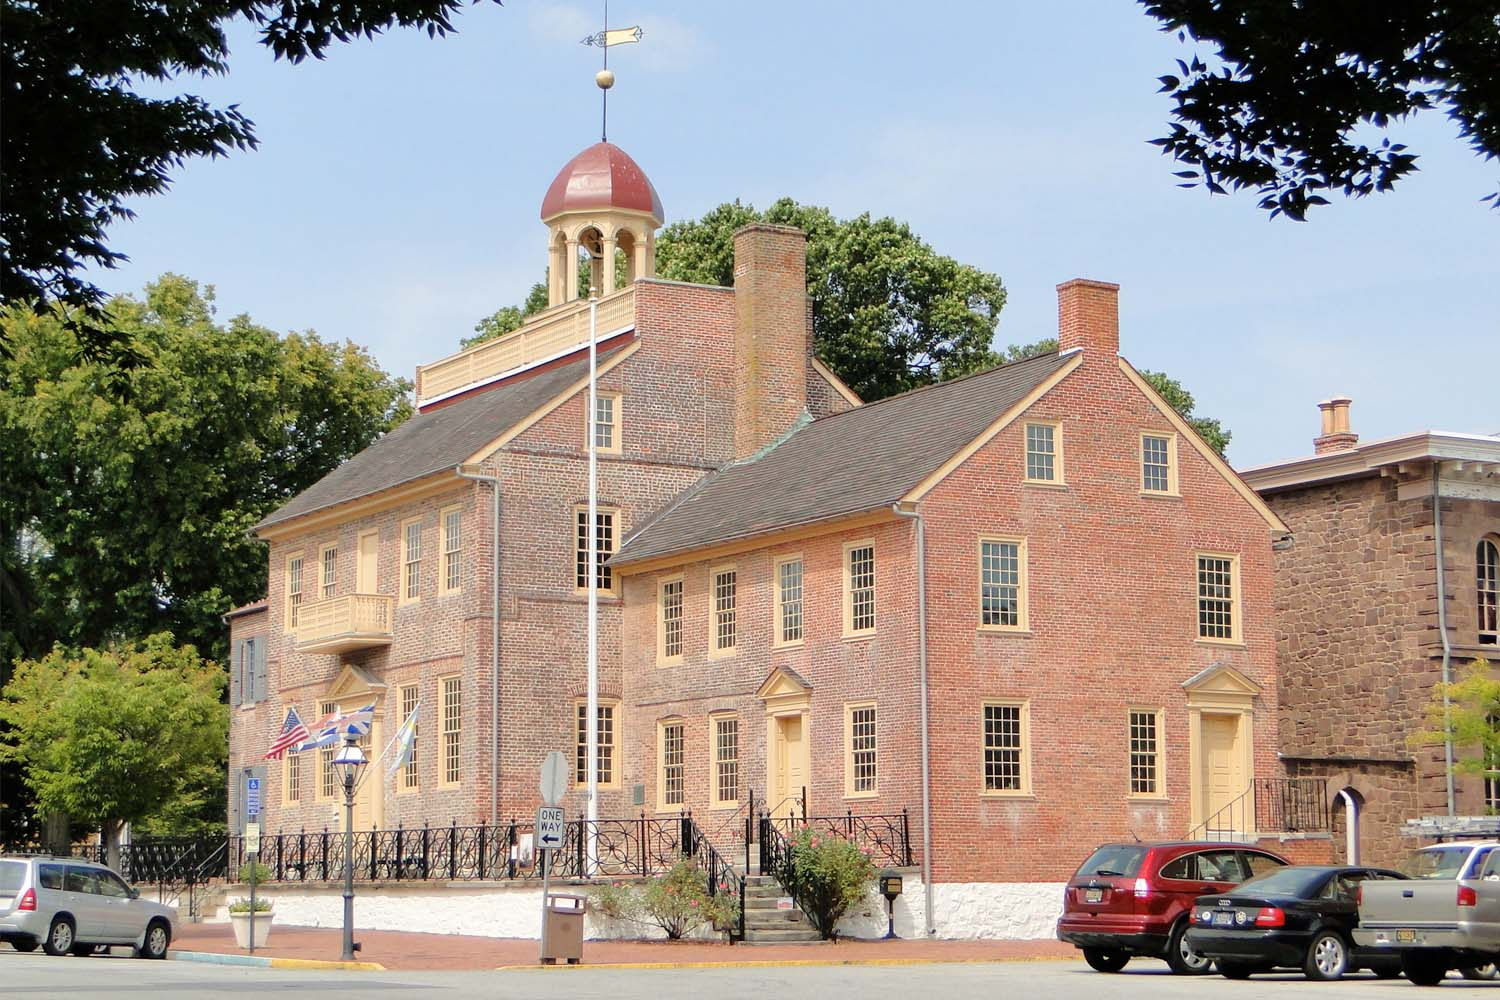 Court House in New Castle, Delaware, USA